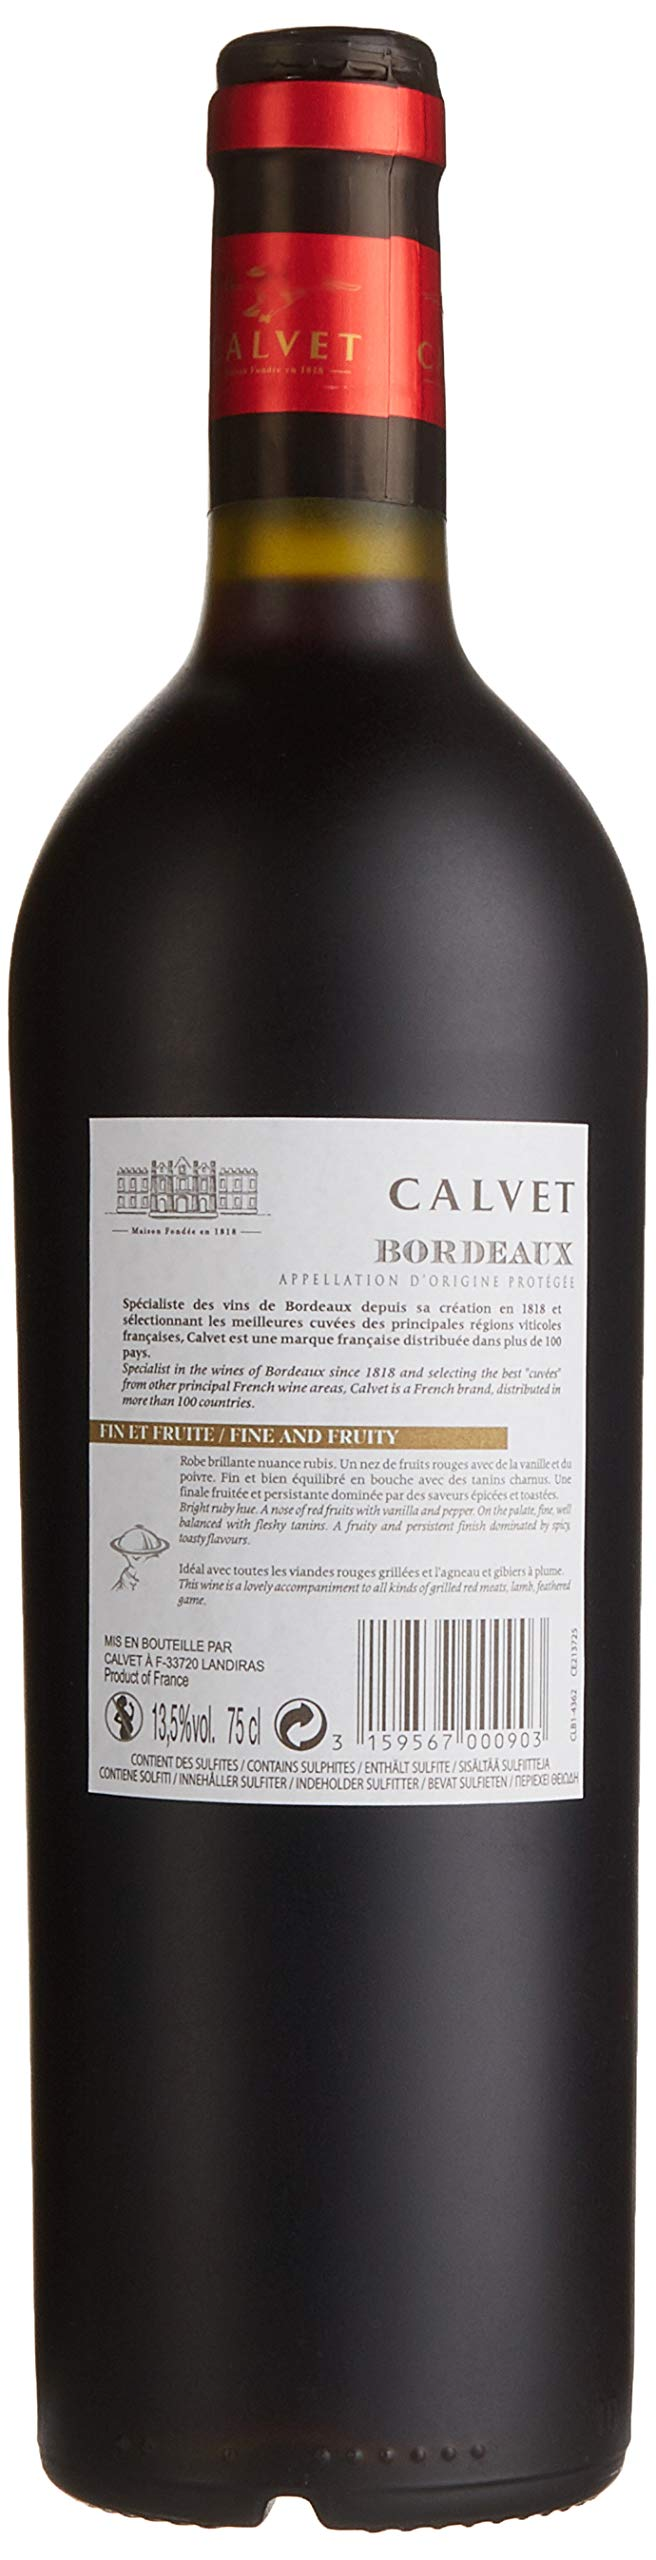 Calvet-Selection-Princes-Medaille-AOP-Bordeaux-Merlot-Halbtrocken-6-x-075-l